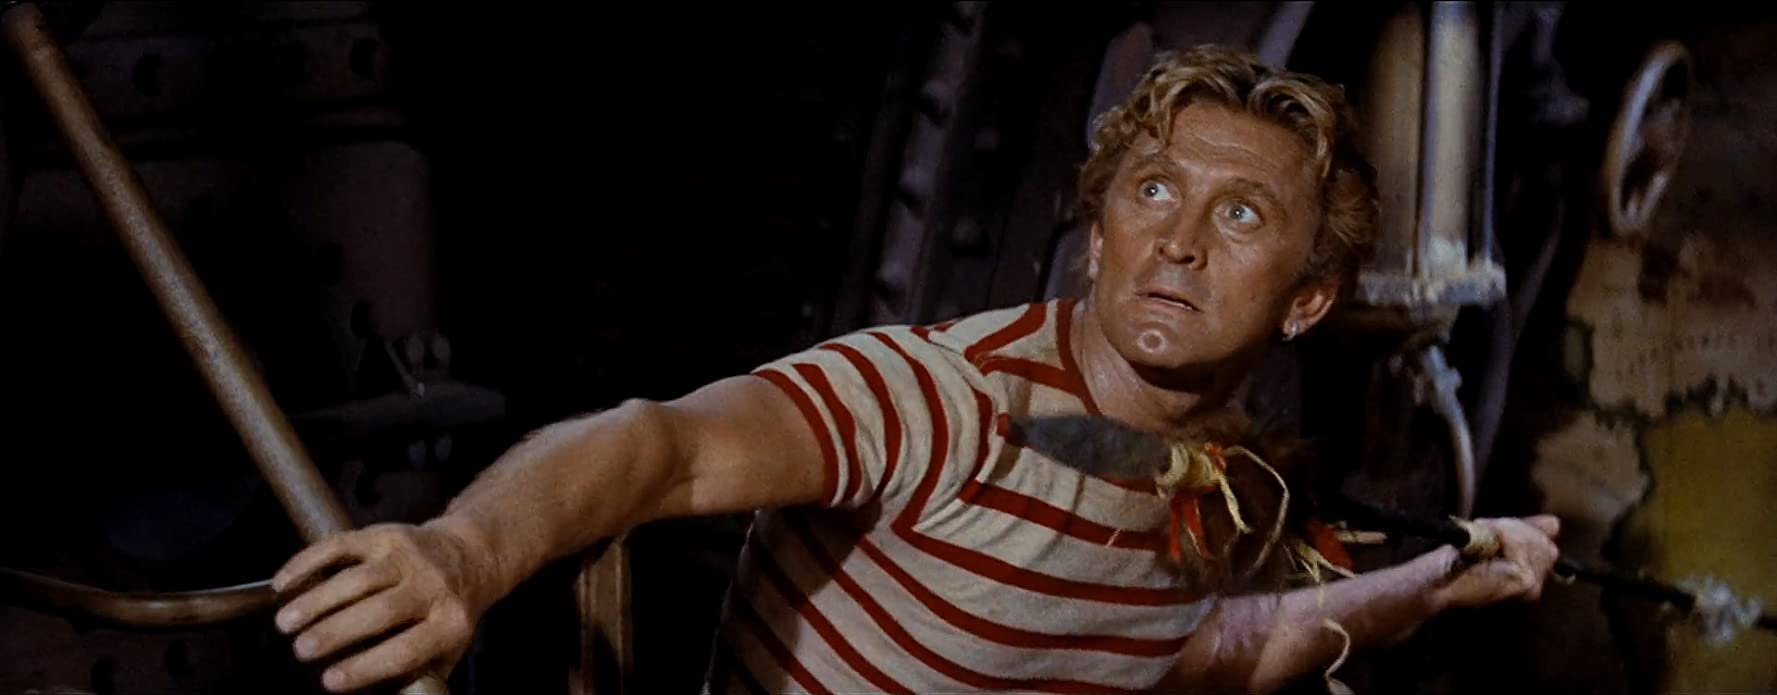 Kirk Douglas in 20,000 Leagues Under the Sea (1954)